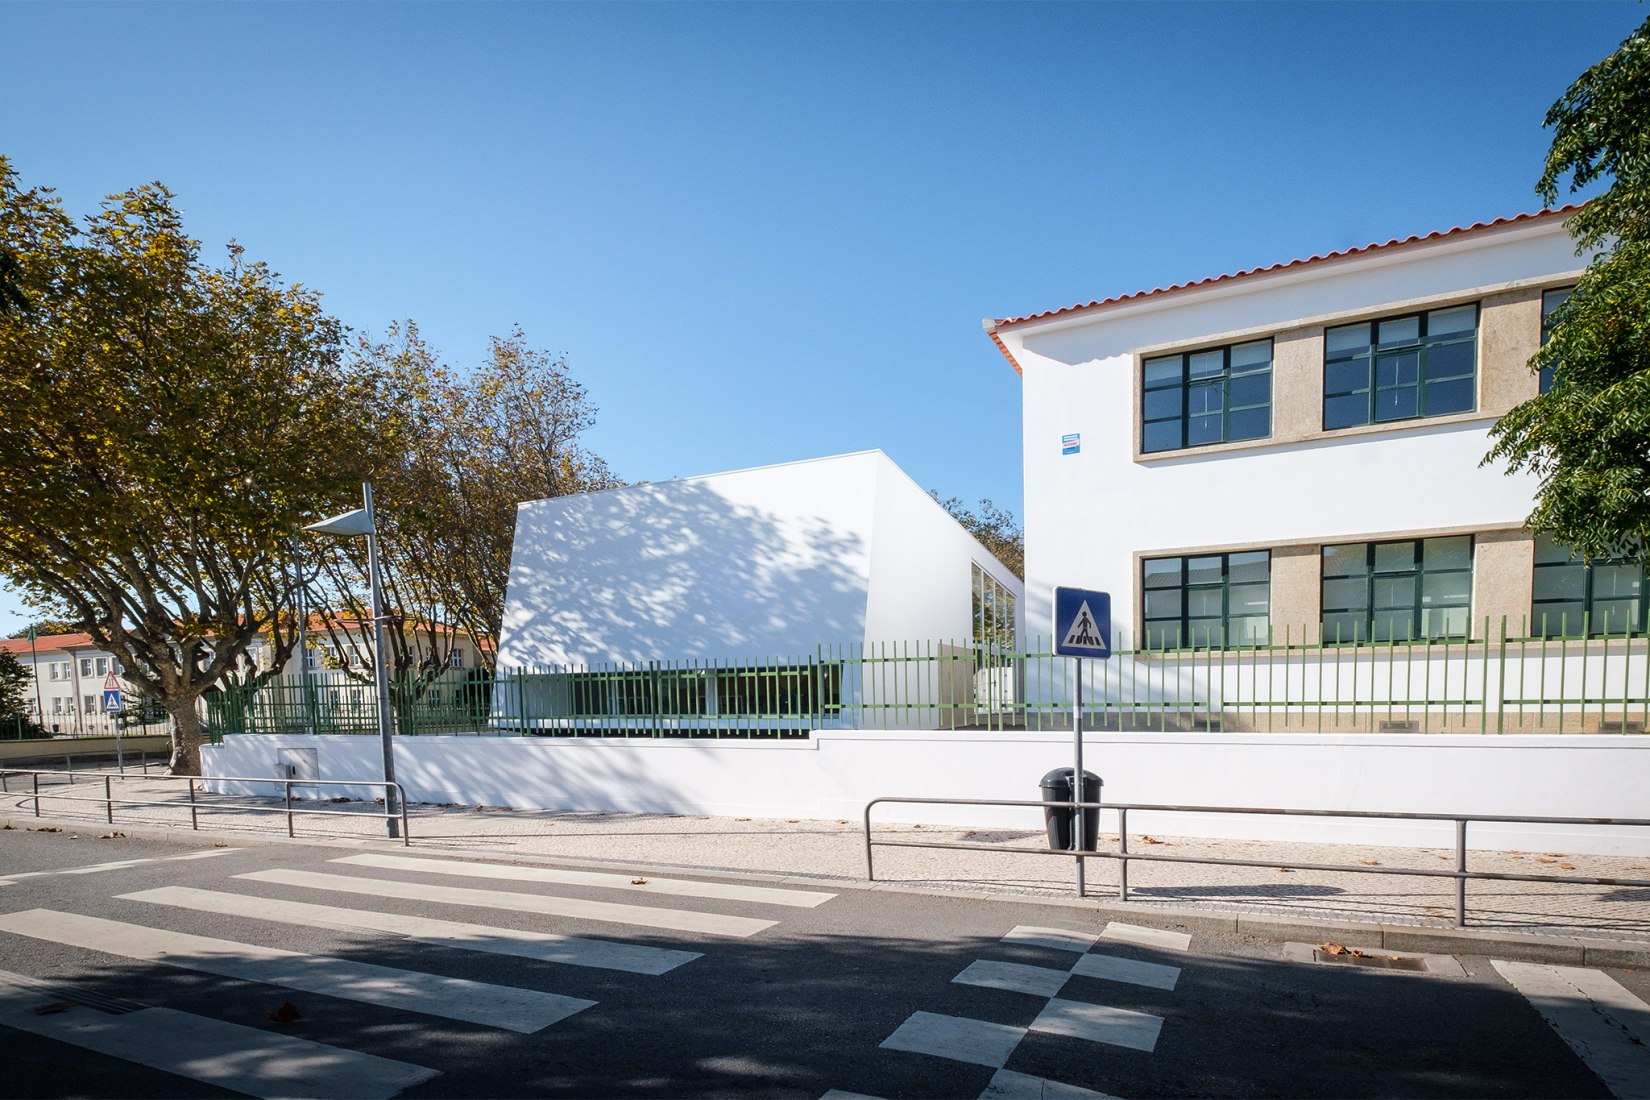 Multi-Purpose School Support Building by Claudio Gil and Anabela Silva Braga. Photograph by cmpv/ Jose Carlos Marques